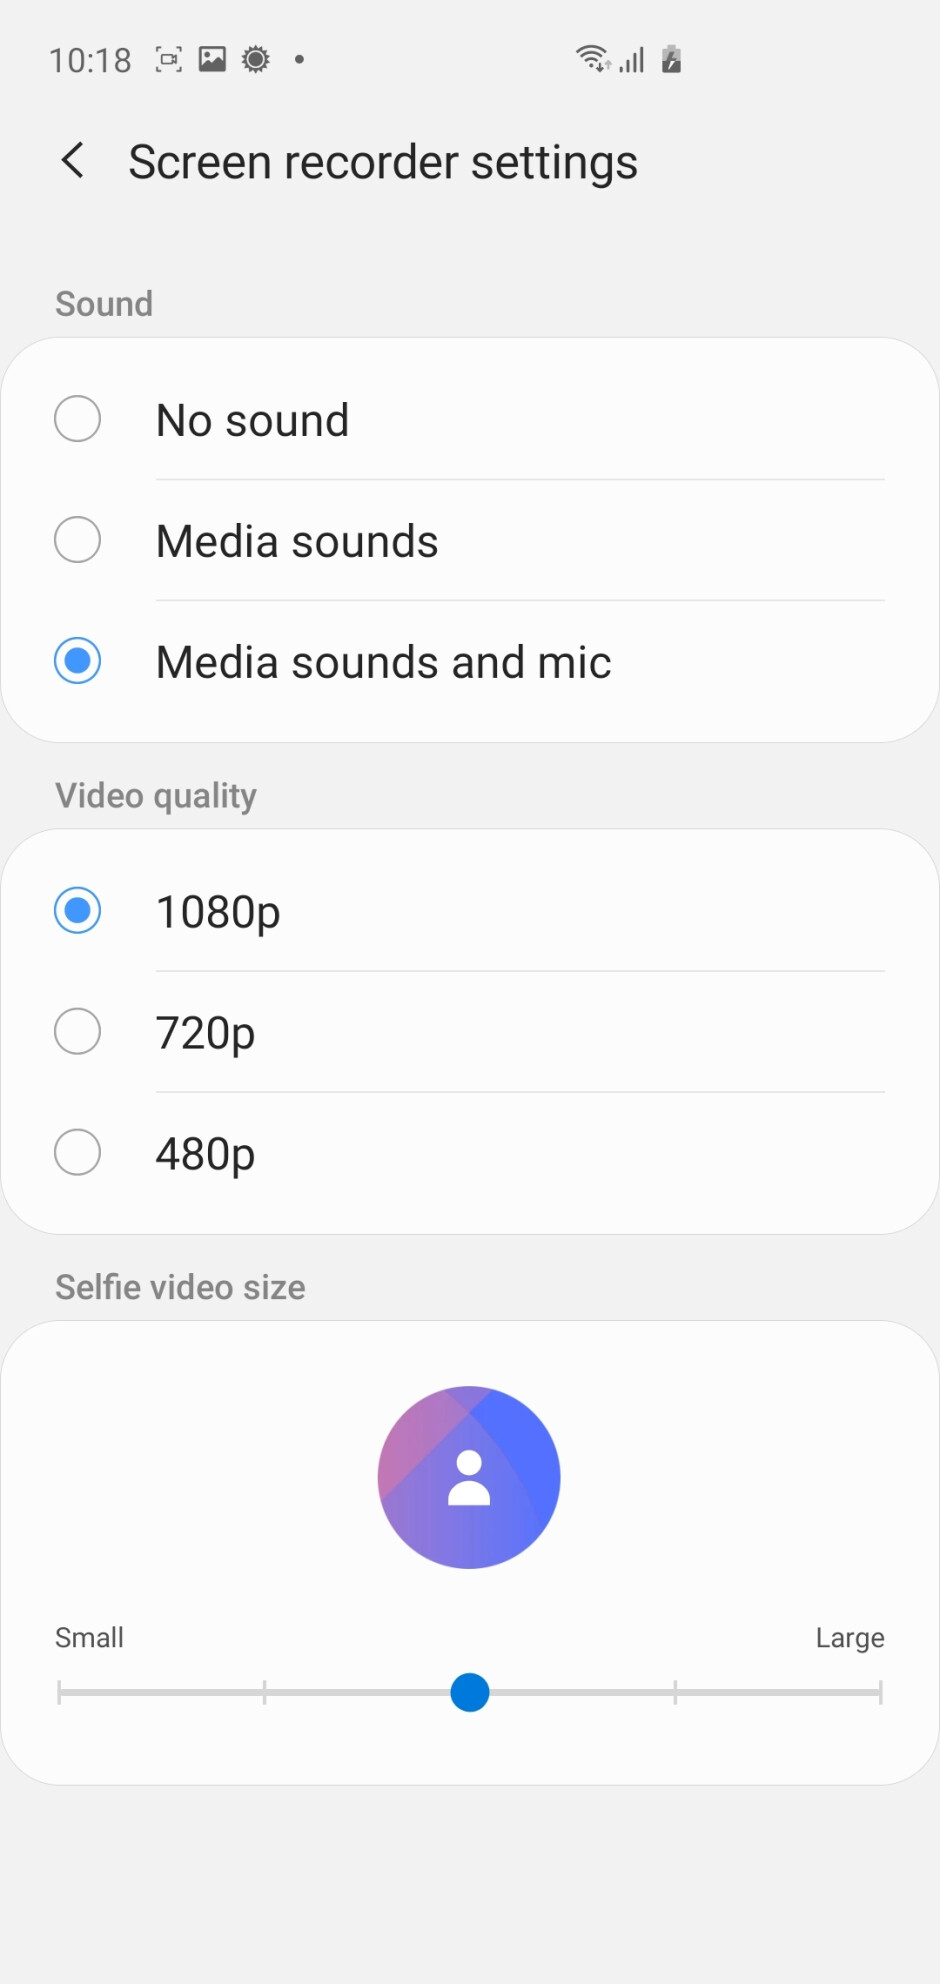 Screen recording on the Galaxy S10+ with Android 10 & One UI 2.0 - Android 10 with One UI 2.0 on the Samsung Galaxy S10+: Hands-on with all the new features